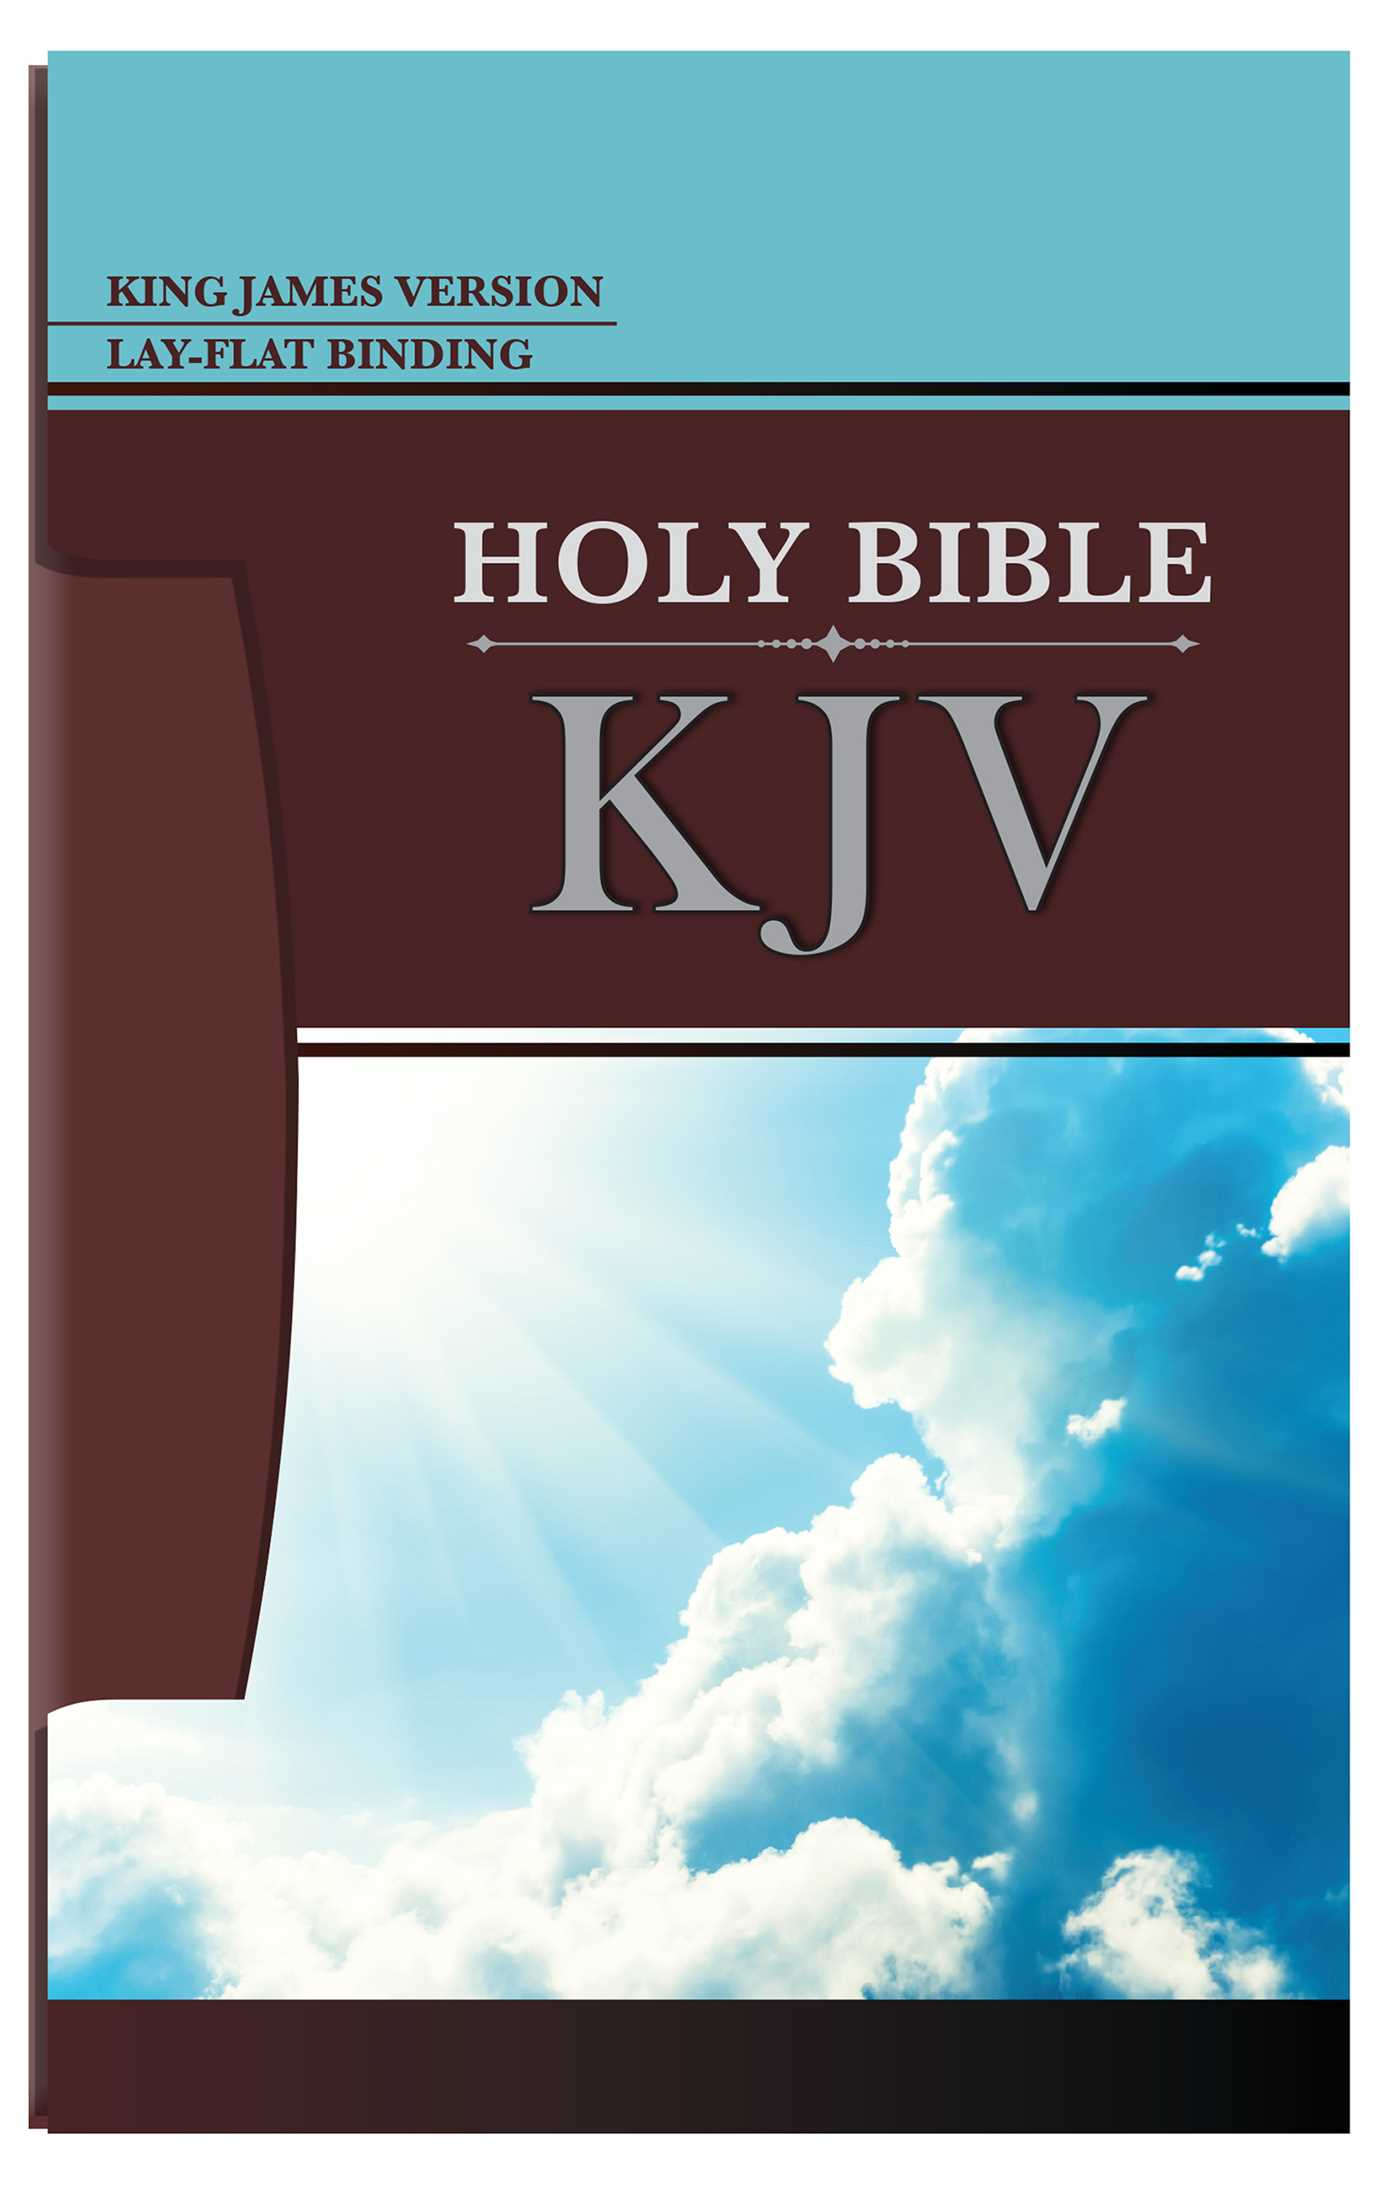 Holy bible kjv 9781684123759 hr